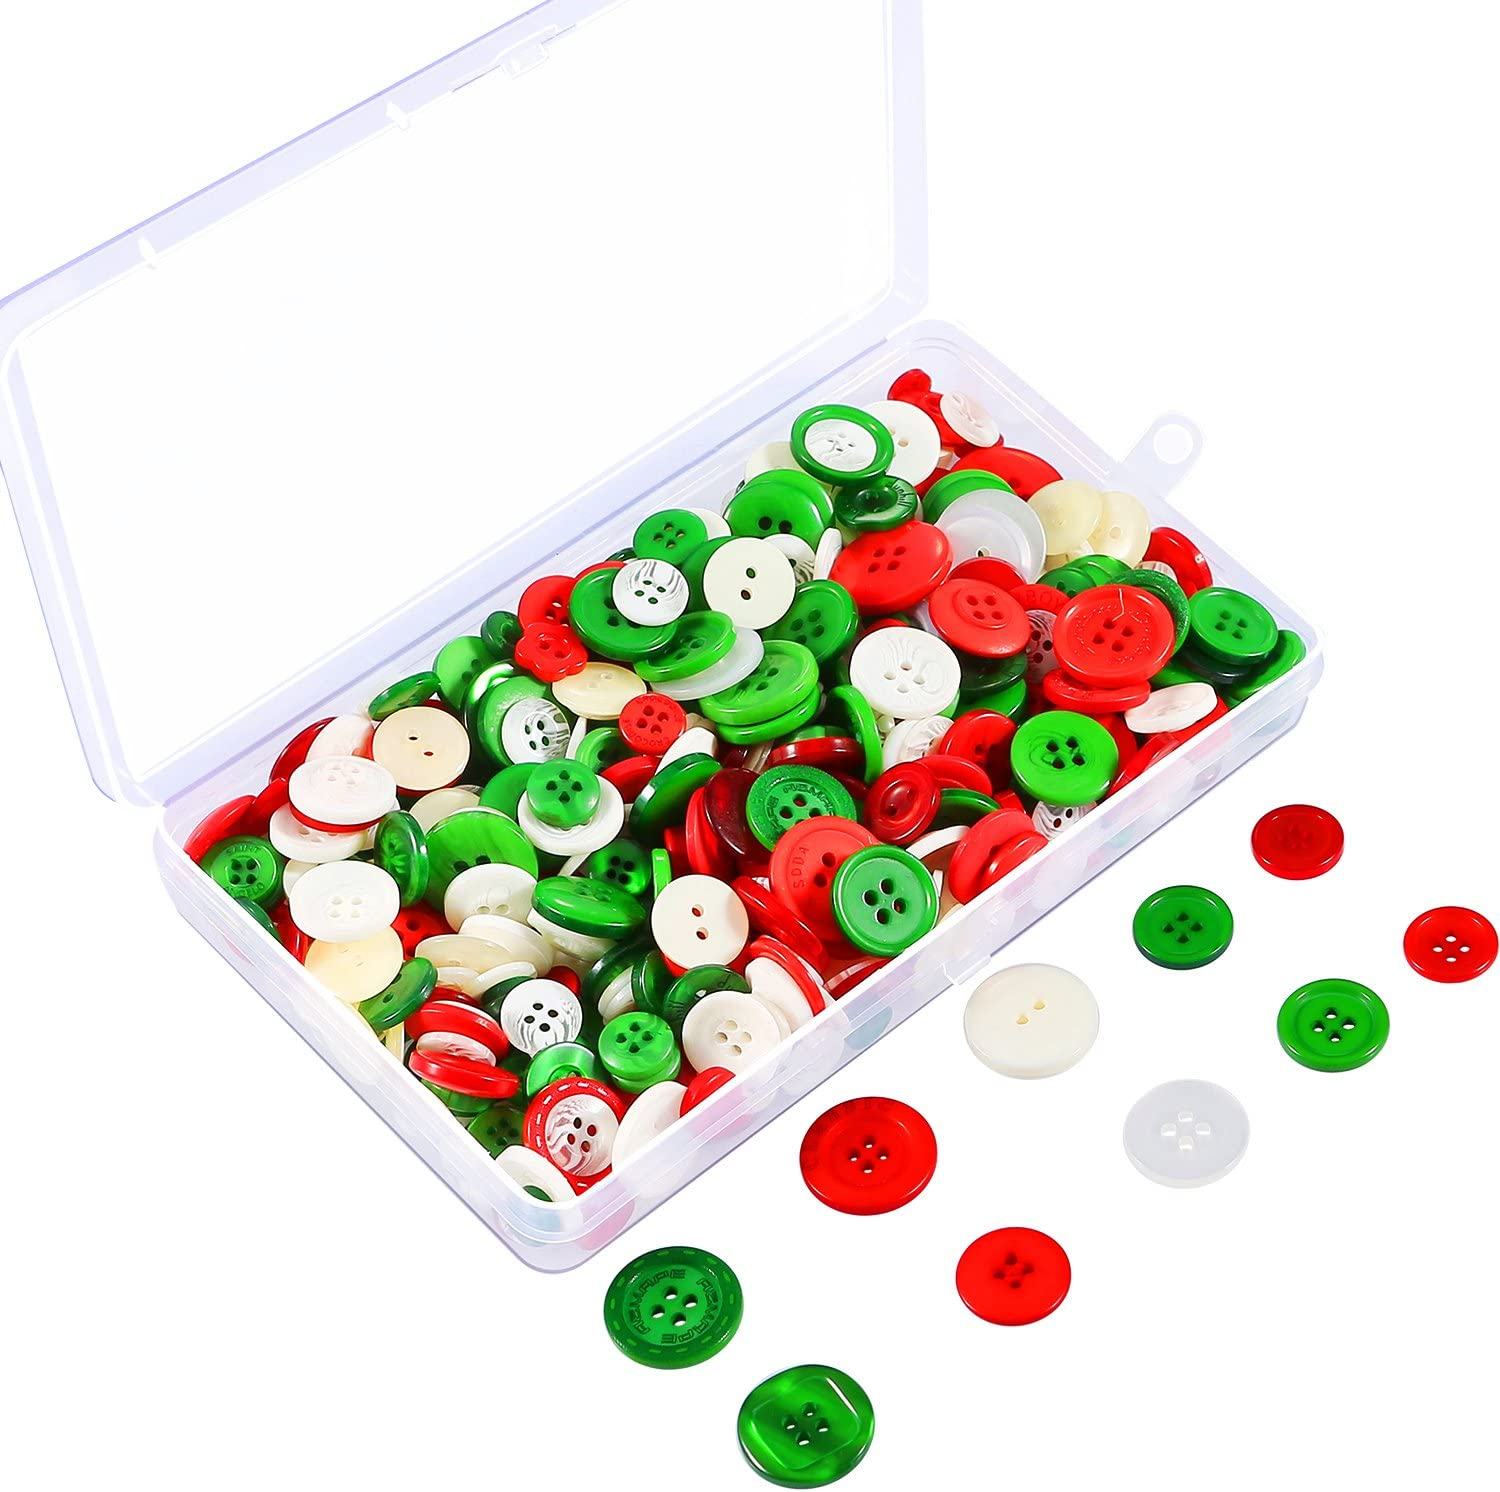 Coobey 200g Christmas Craft Buttons Handmade Sewing Buttons with Plastic Storage Box for DIY Sewing Crafting Assorted Colors and Sizes